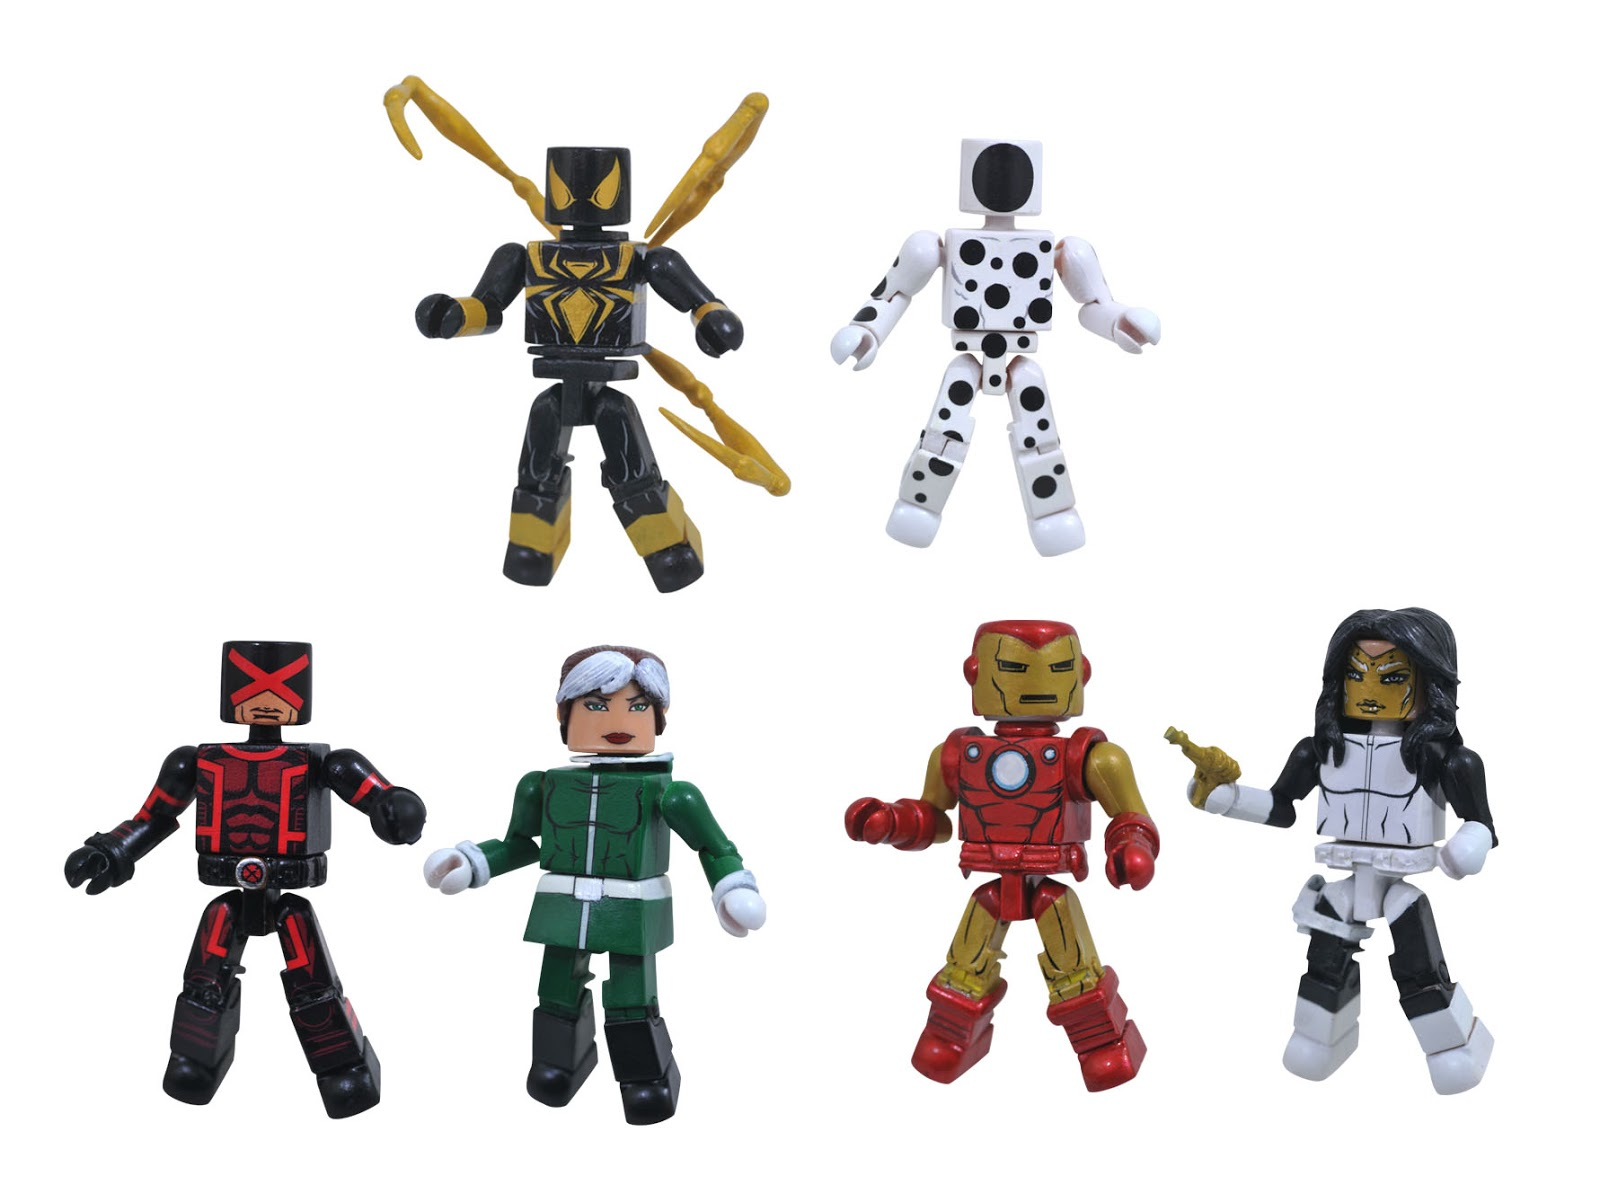 on sale 8fea1 75138 For 15 years, and over nearly 400 characters, Marvel Minimates have been  building the Marvel Universe one assortment at a time.